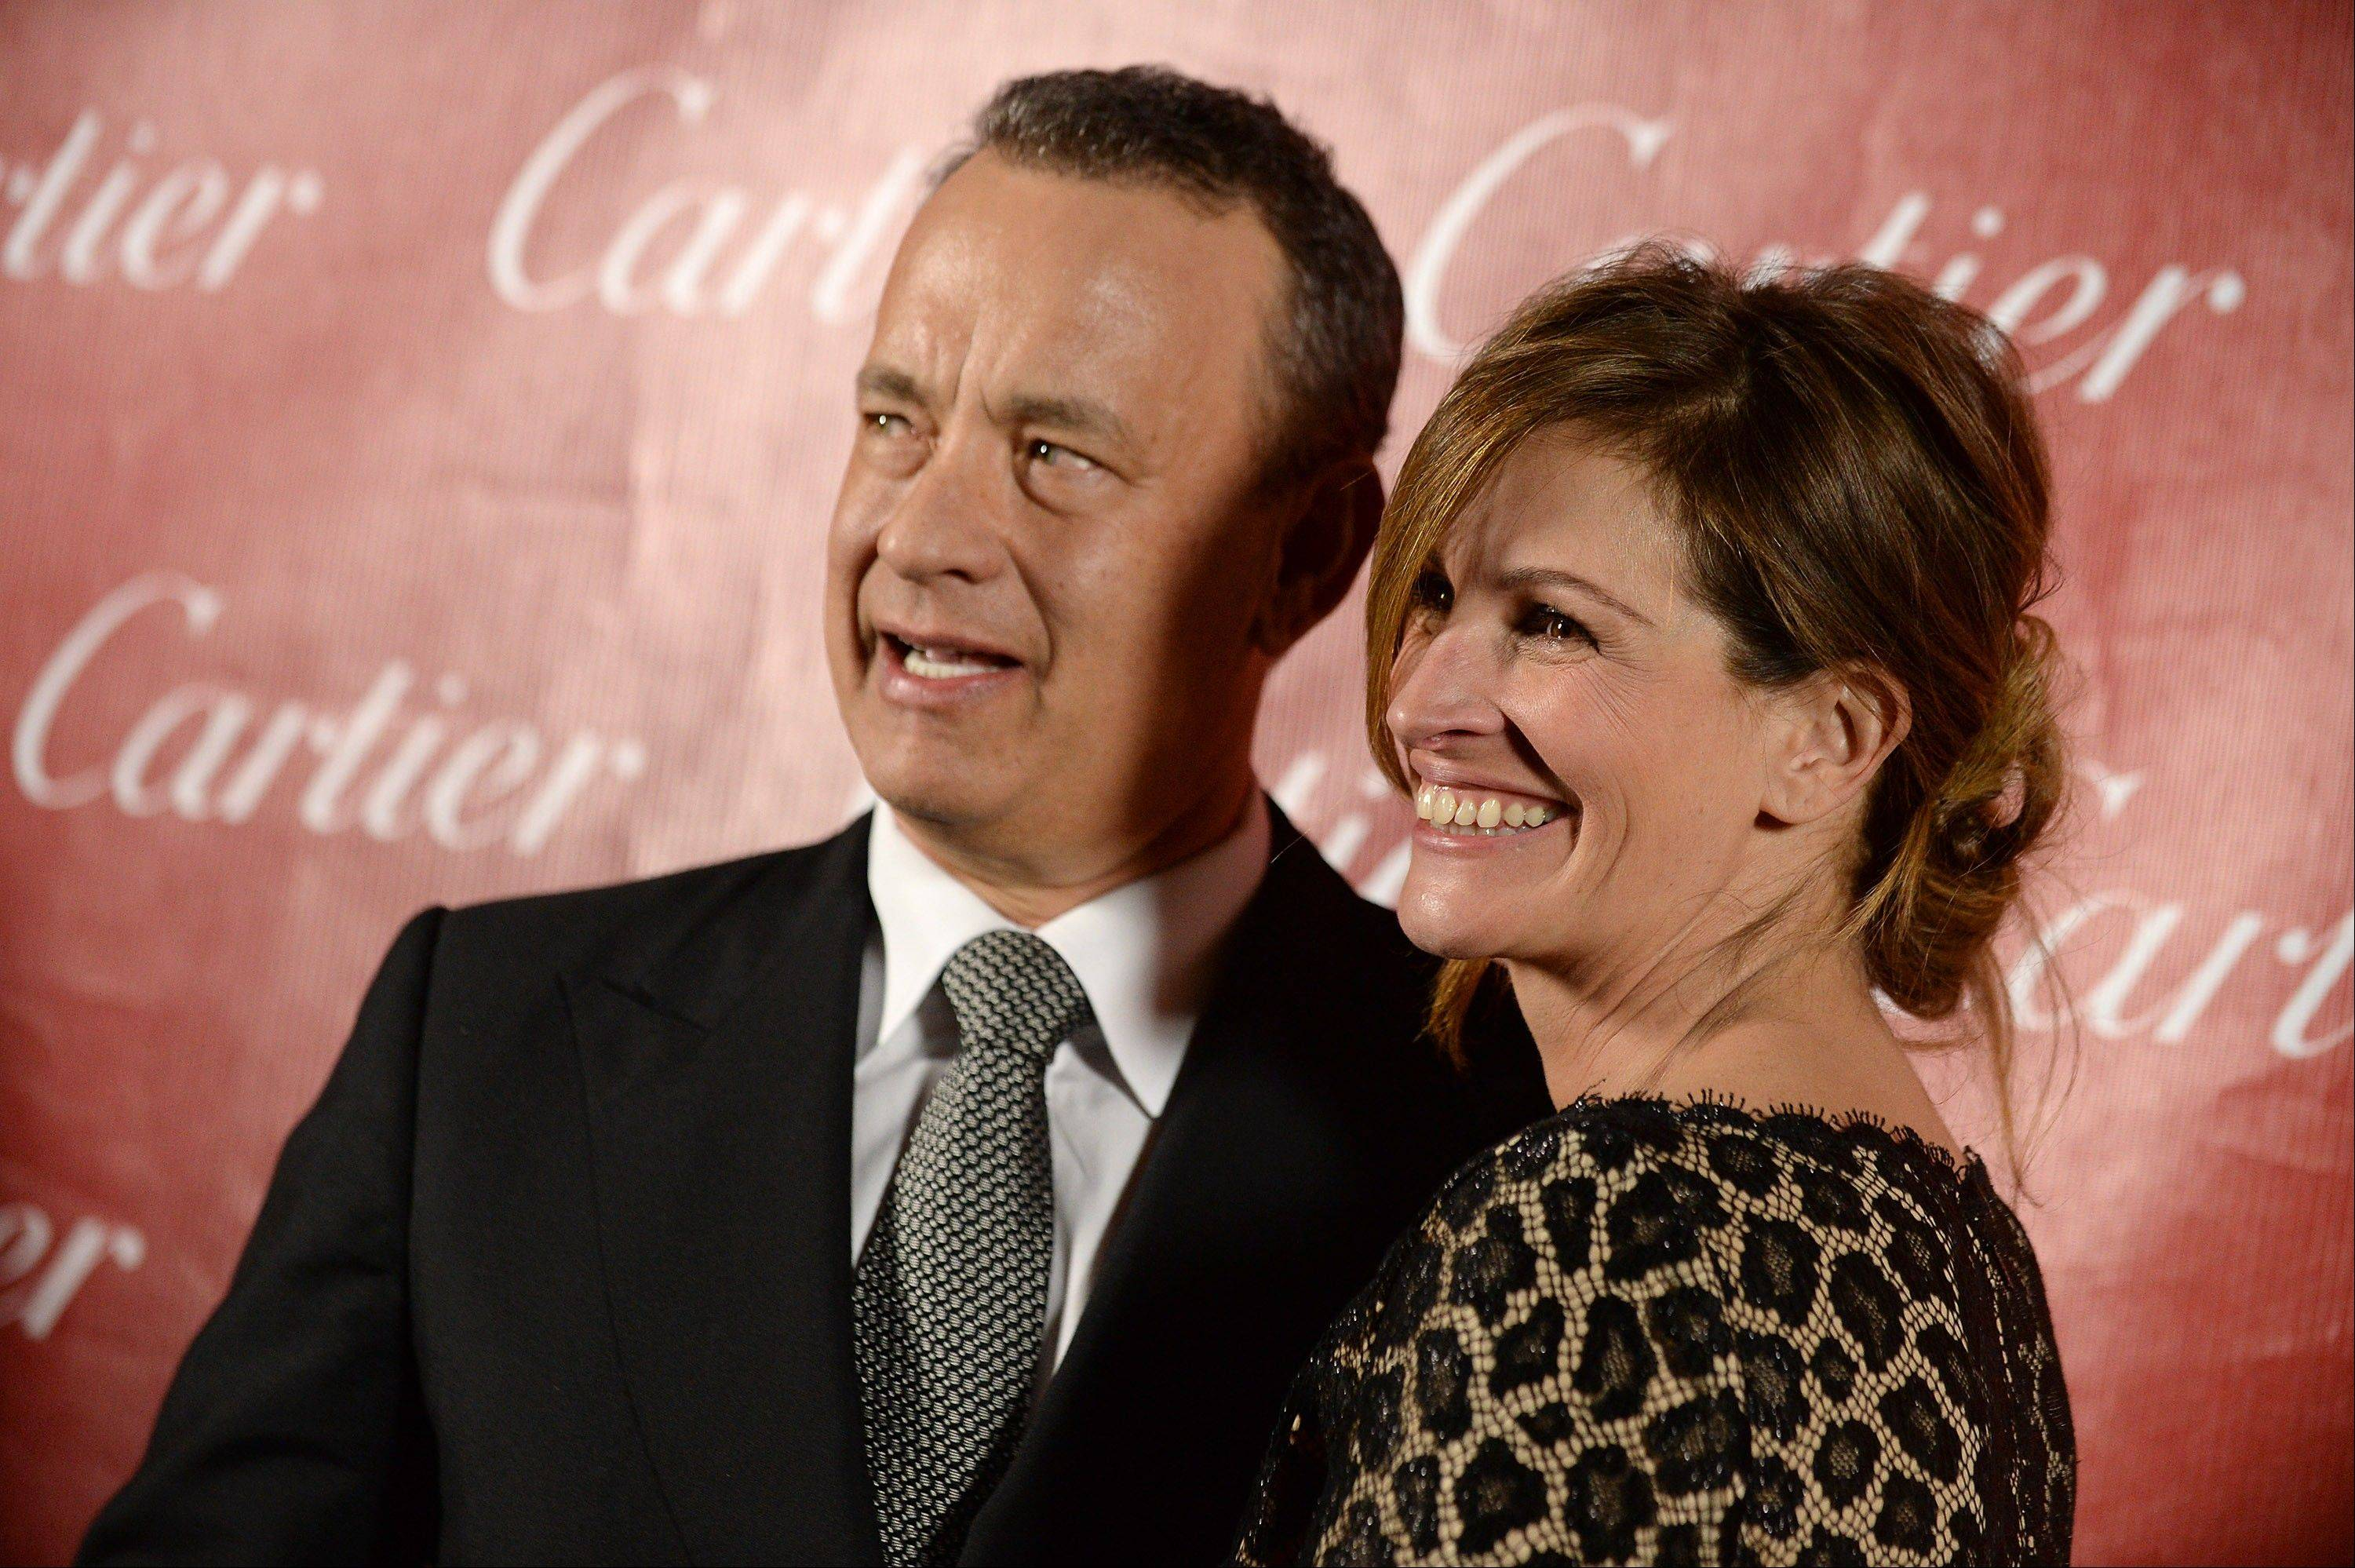 Tom Hanks and Julia Roberts pose backstage at the Palm Springs International Film Festival Awards Gala at the Palm Springs Convention Center on Saturday in Palm Springs, Calif.